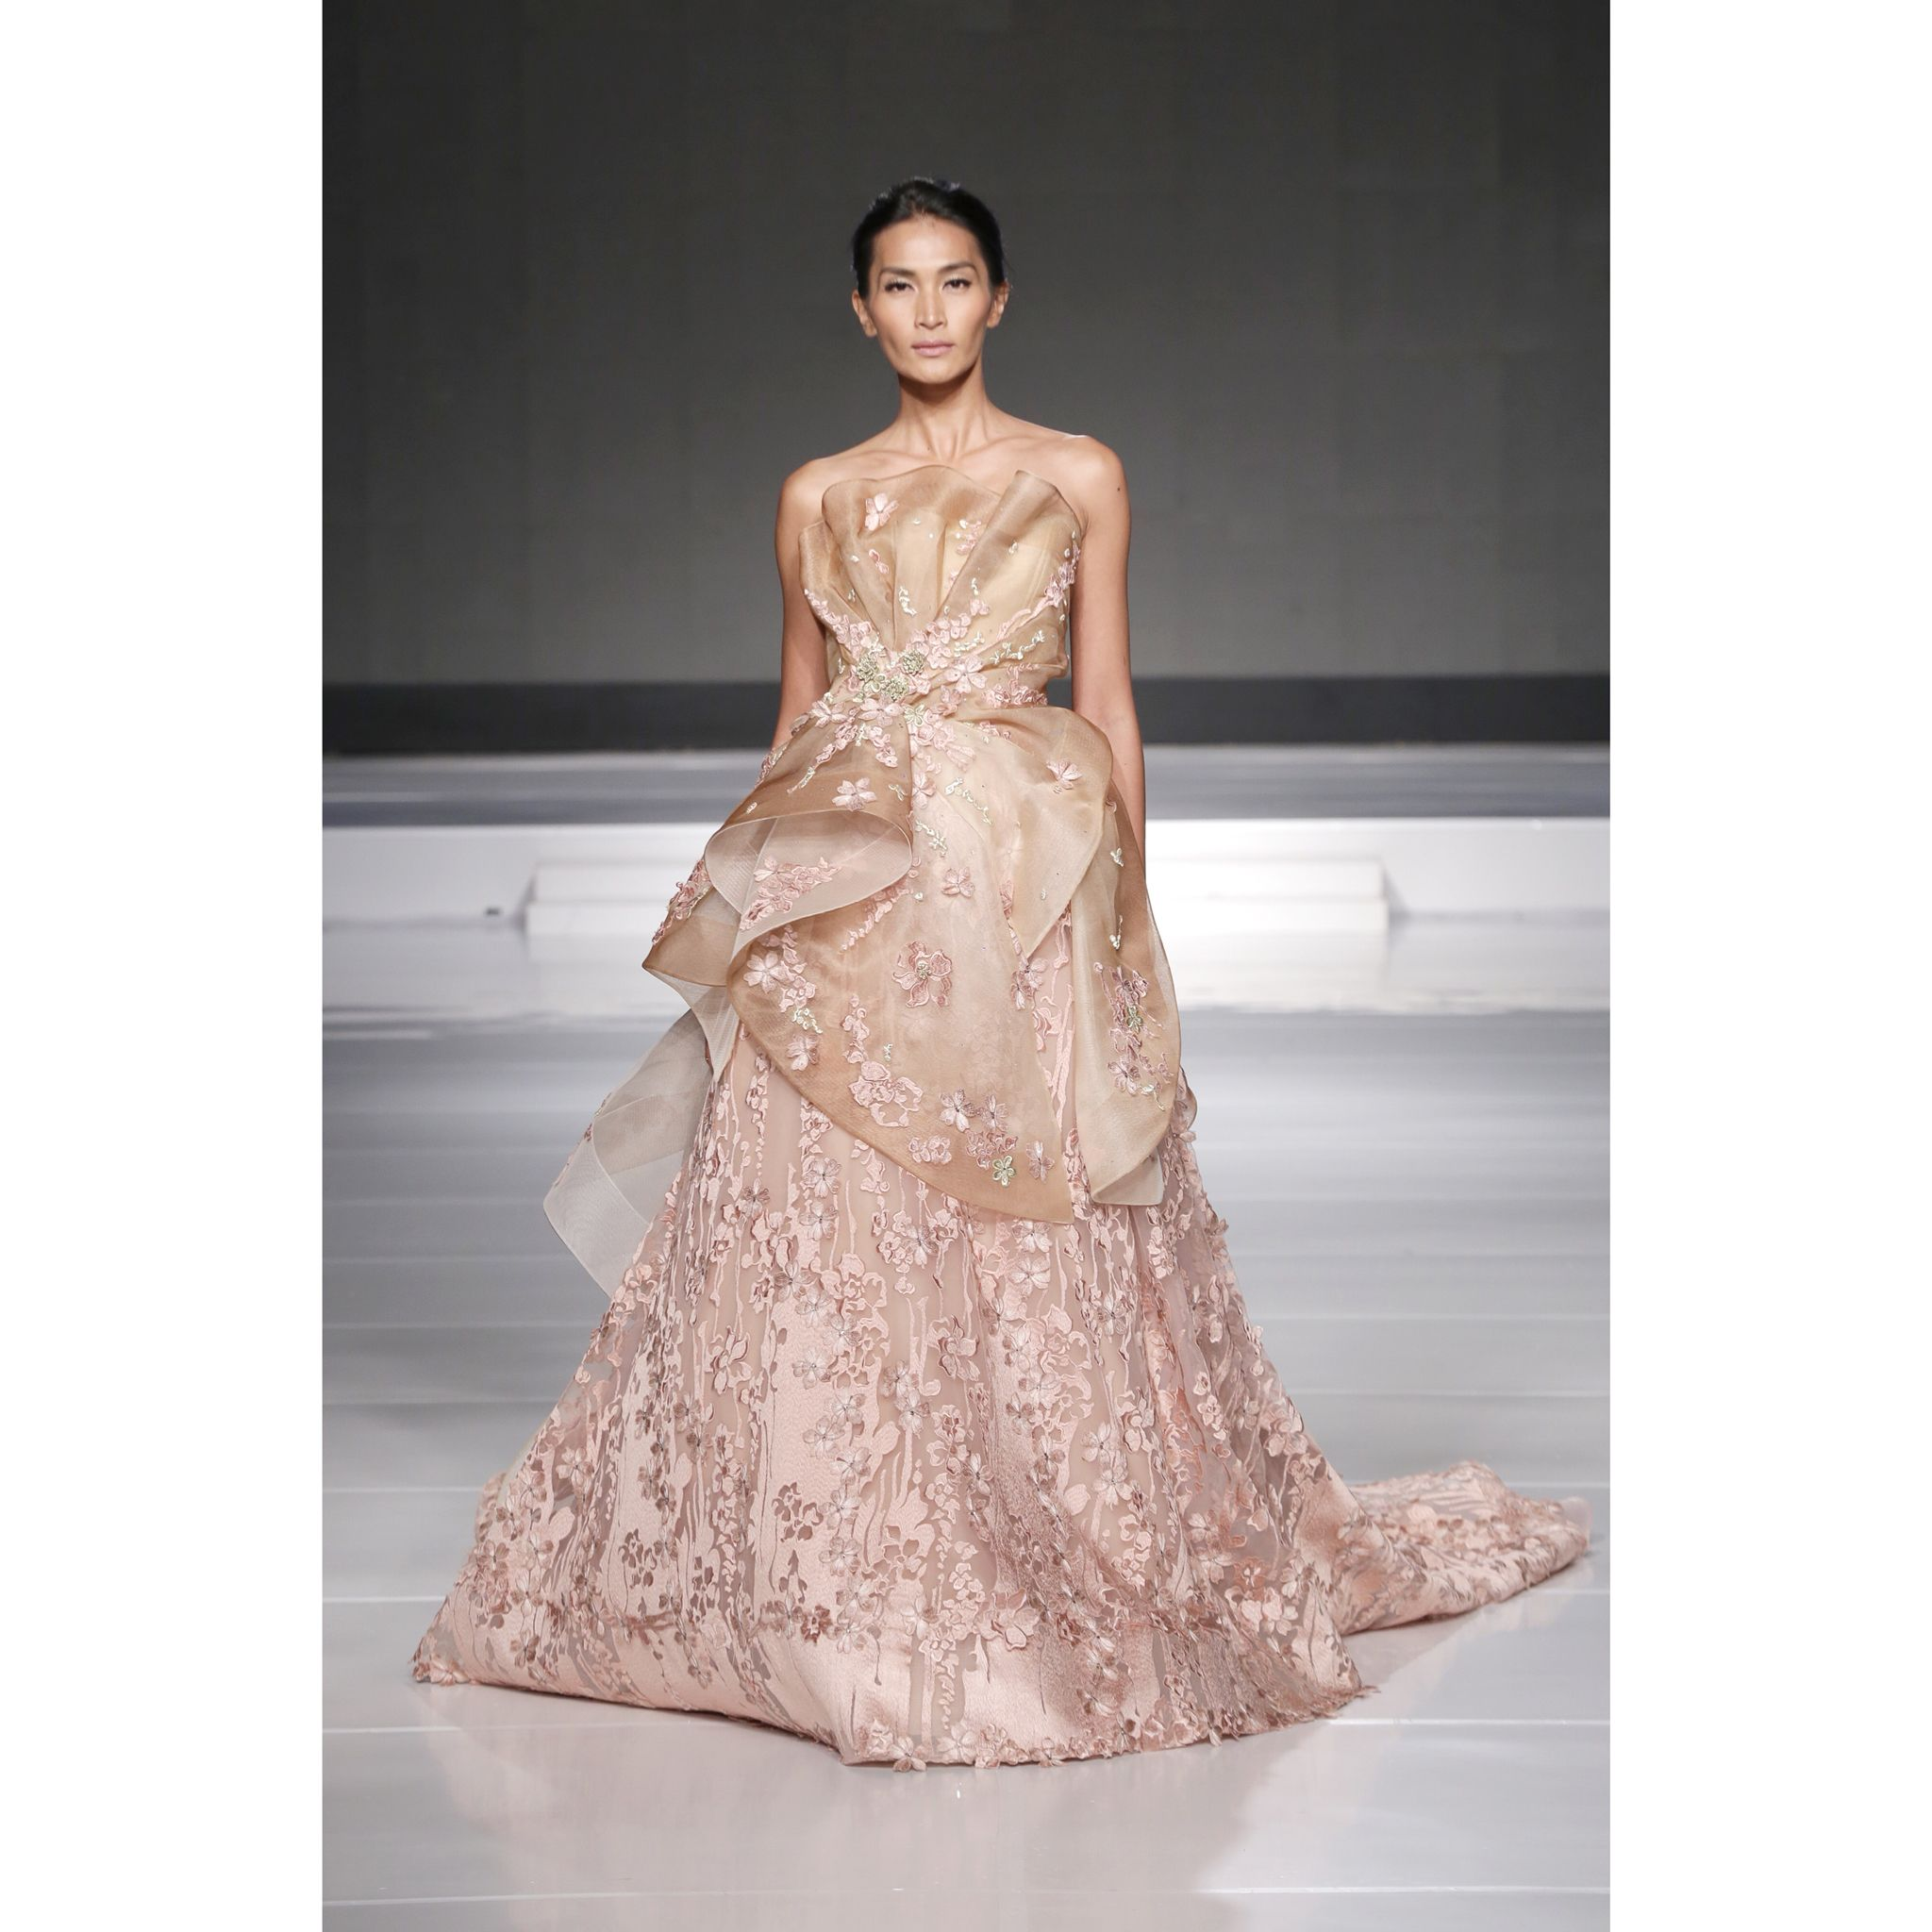 transparent lace in rosegold floral ballgown transparent ballgown